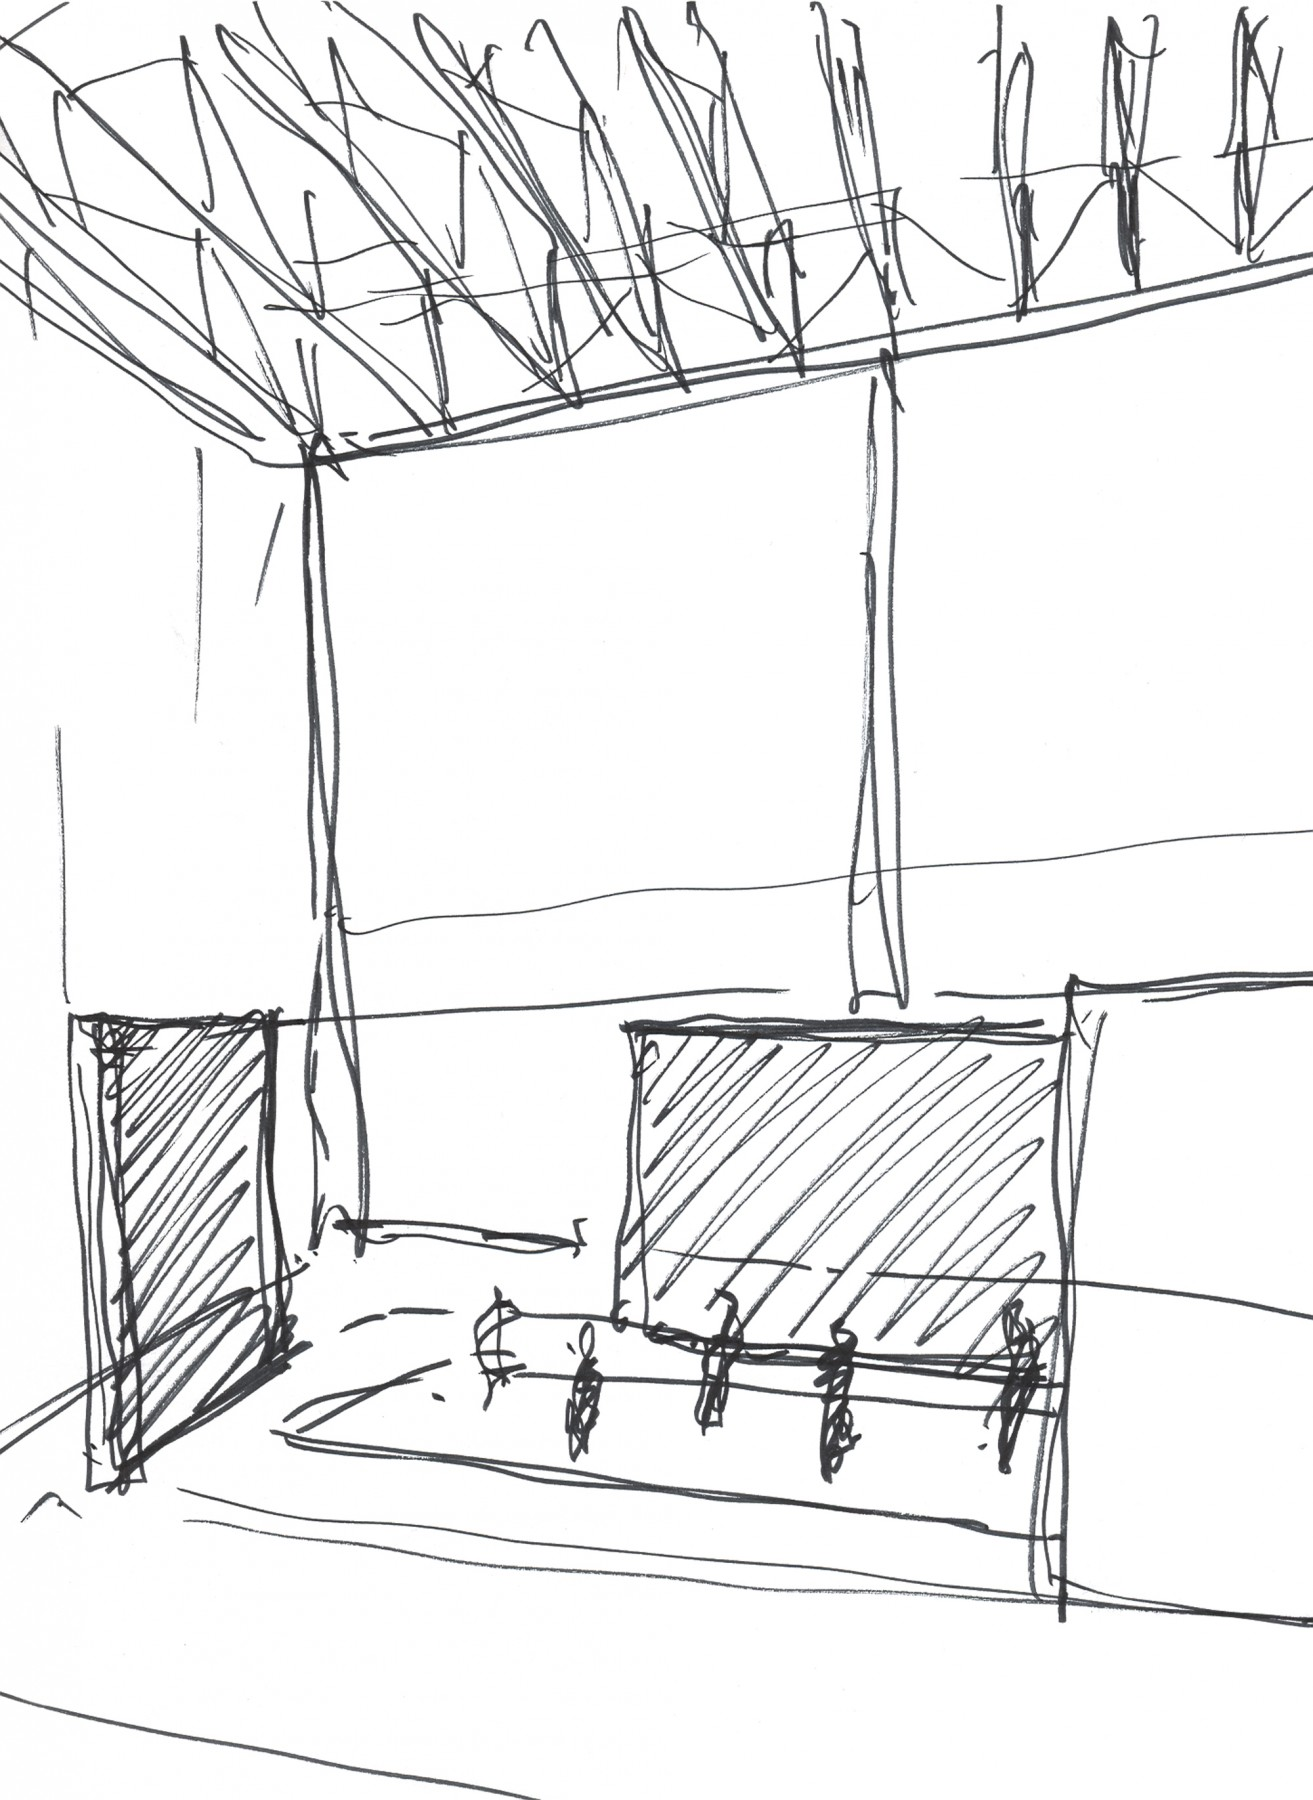 Upright-Figure-Tate-Britain-London-design-exhibition-Jamie-Fobert-Architects-Turbine-Hall-sketches